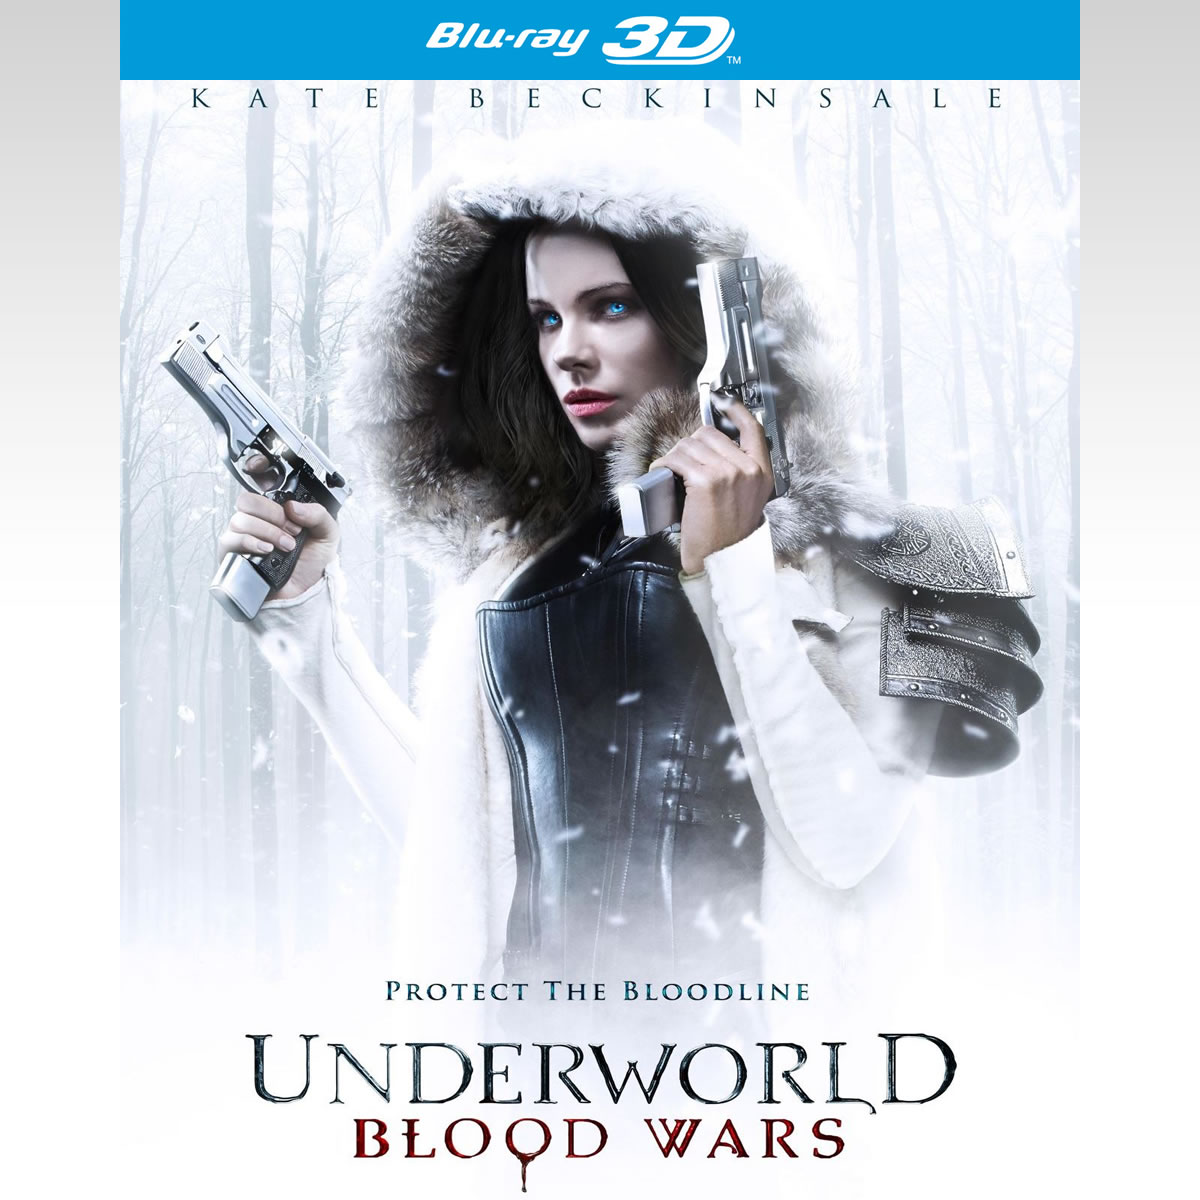 UNDERWORLD: BLOOD WARS 3D - UNDERWORLD: Η ΑΙΜΑΤΟΧΥΣΙΑ 3D (BLU-RAY 3D/2D)